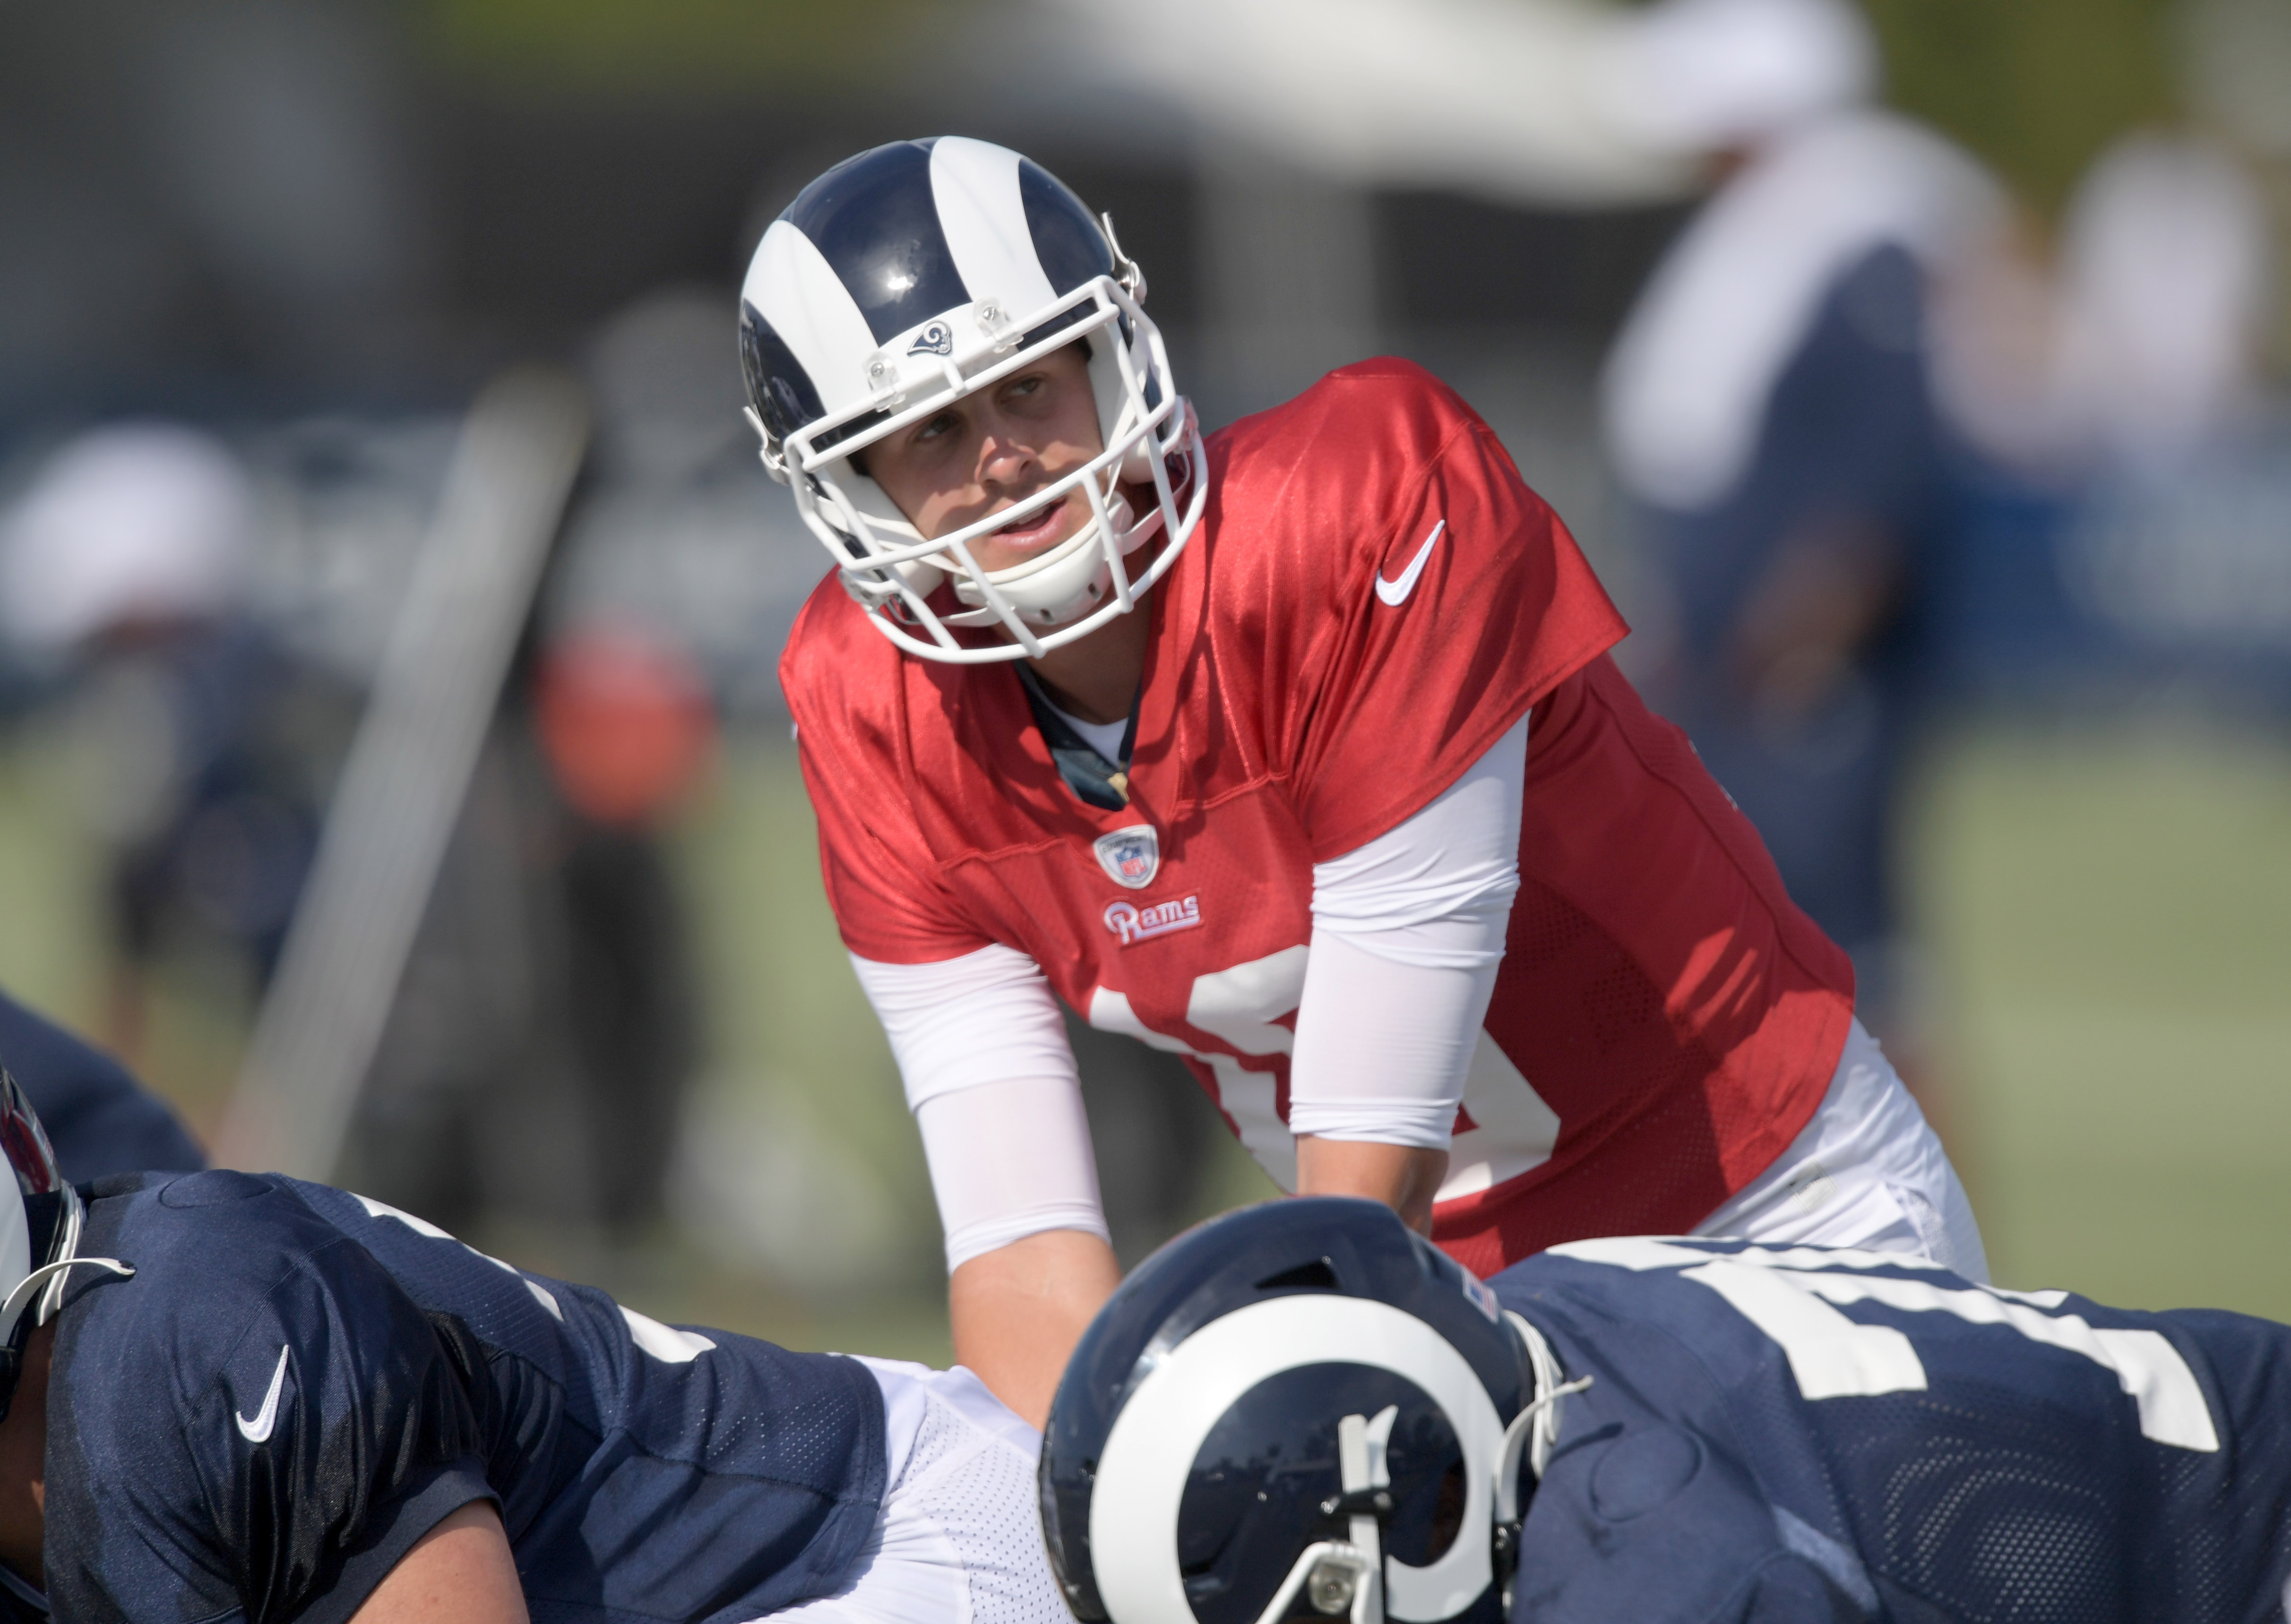 Los Angeles Rams QB Jared Goff takes a snap during training camp at UC Irvine, Jul. 30, 2019.